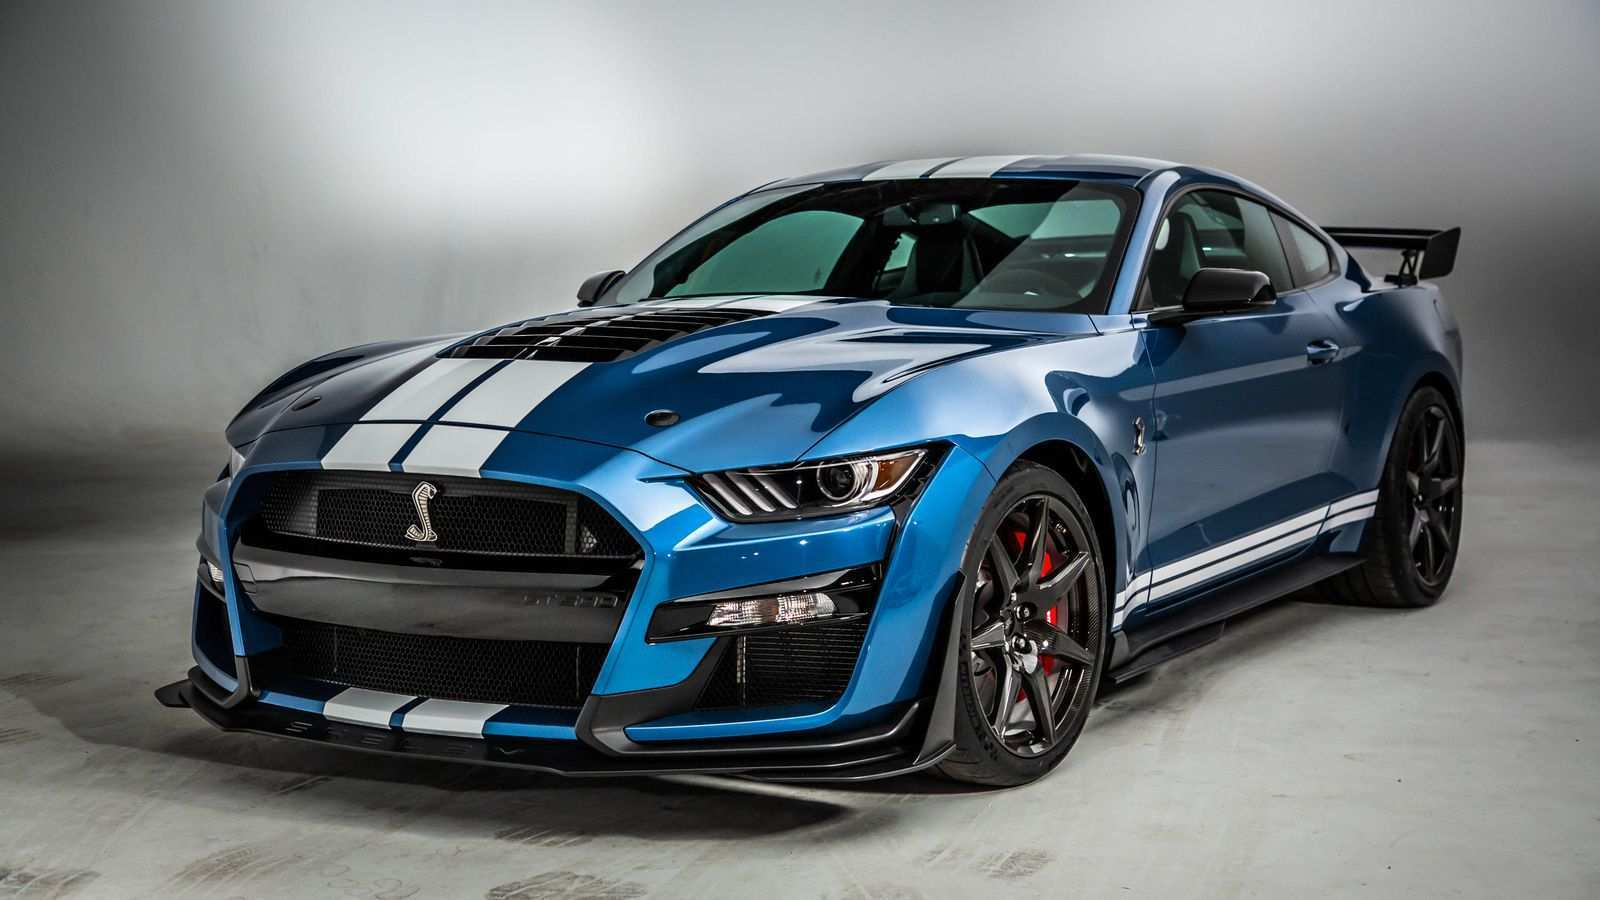 16 Great 2020 Ford Shelby Gt500 Price Rumors with 2020 Ford Shelby Gt500 Price